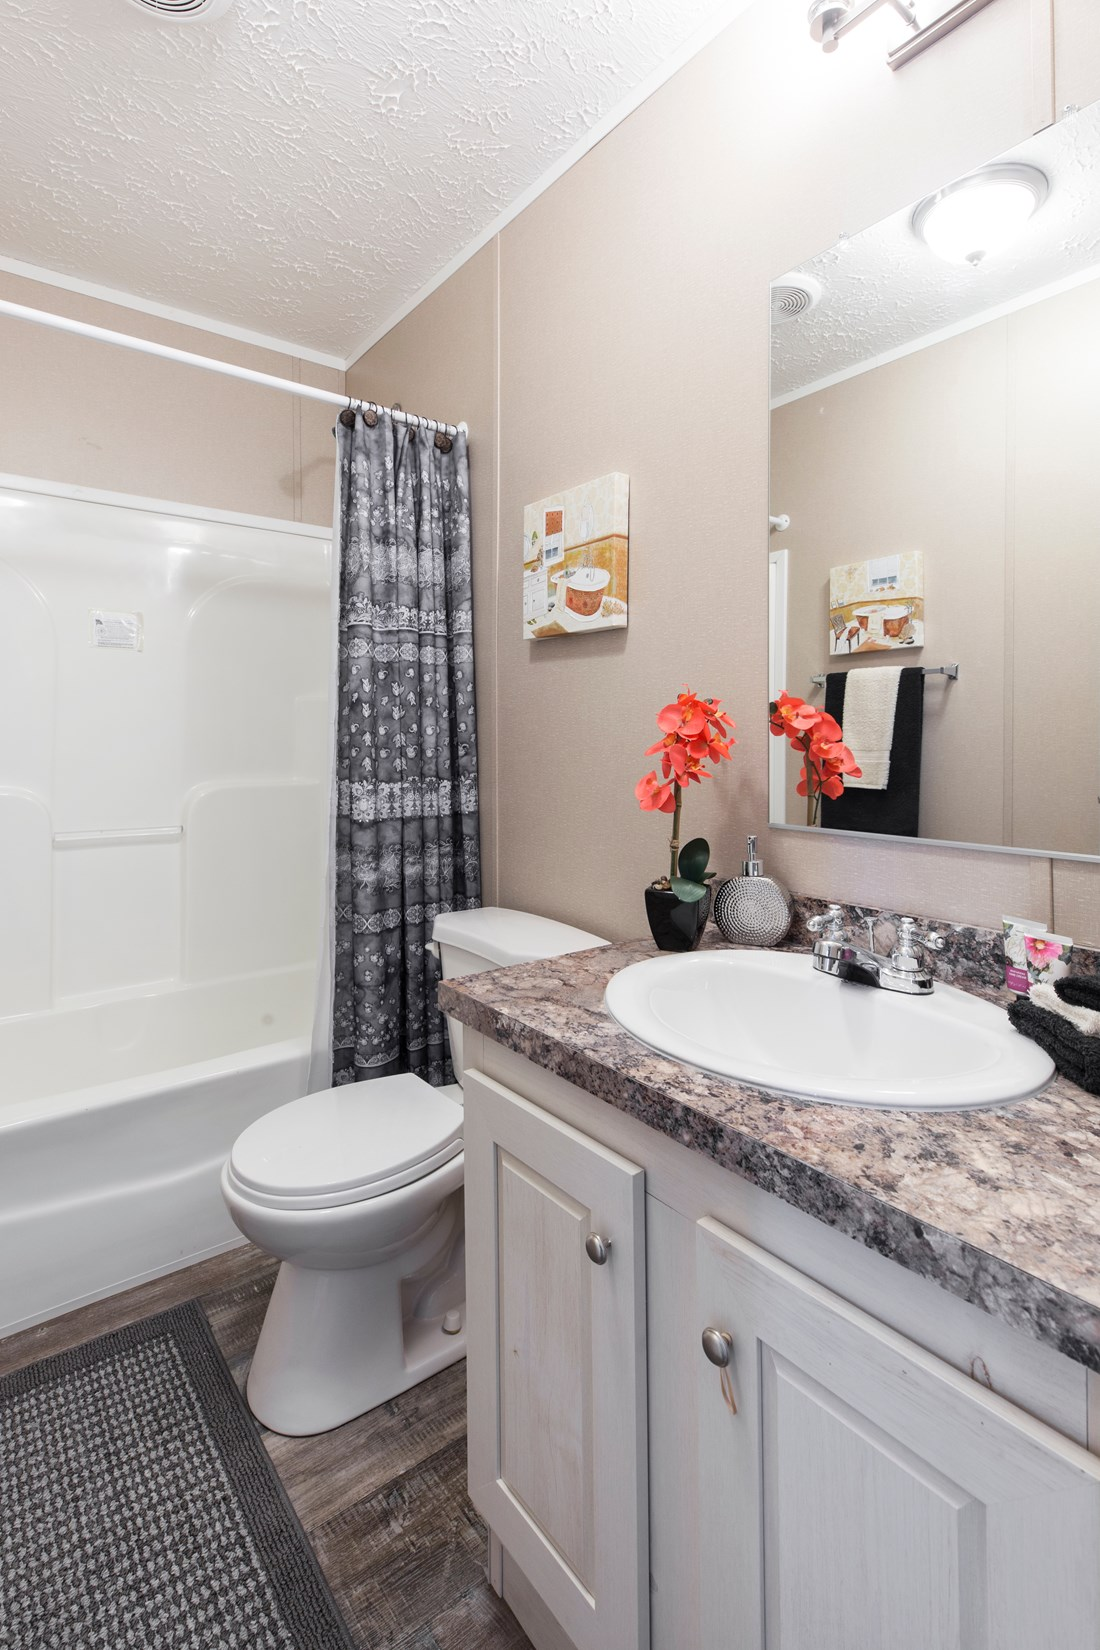 The 900  ADVANTAGE PLUS 5616 Guest Bathroom. This Manufactured Mobile Home features 2 bedrooms and 2 baths.